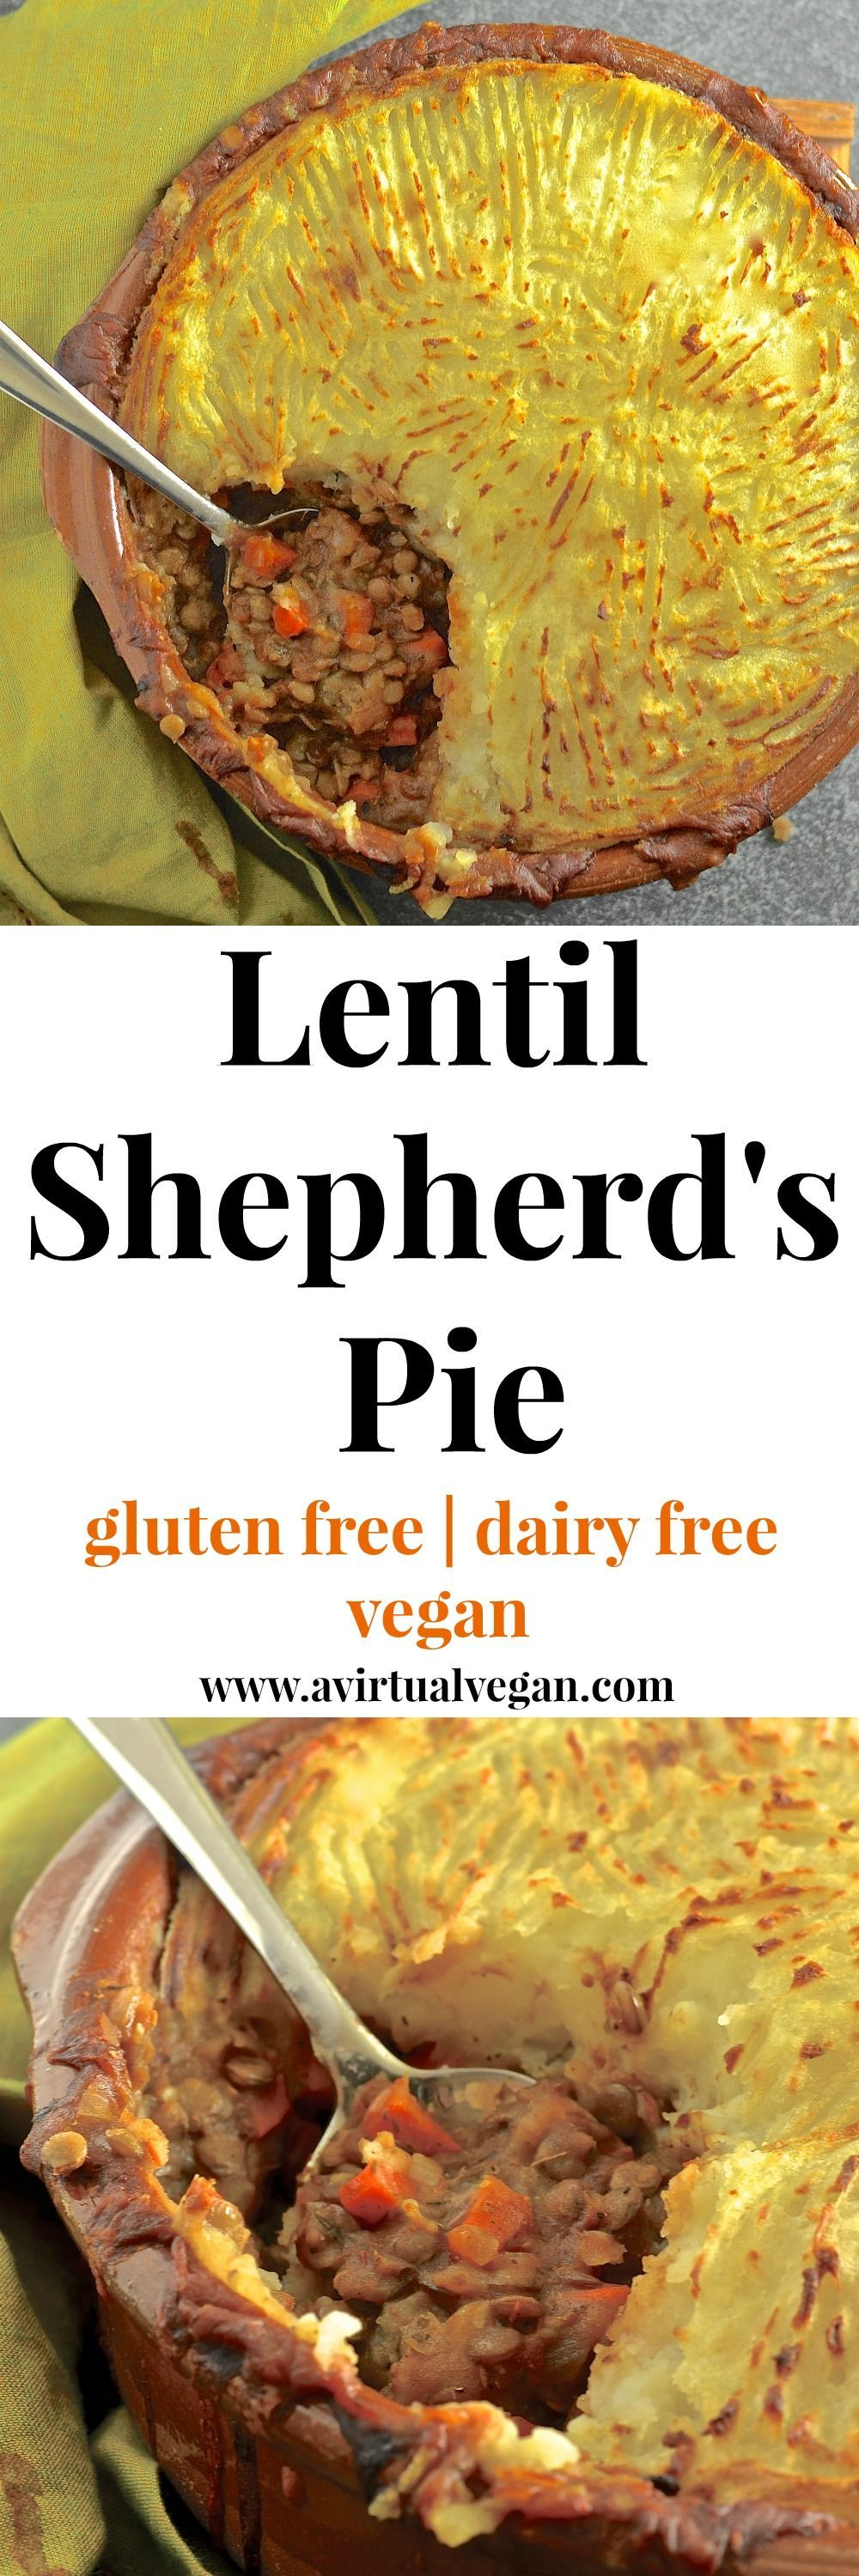 Shepherd's Pie Rich, flavourful, saucy lentils topped with fluffy, creamy mashed potatoes & baked until deliciously golden brown & crispy. The ultimate vegan lentil shepherd's pie!Rich, flavourful, saucy lentils topped with fluffy, creamy mashed potatoes & baked until deliciously golden brown & crispy. The ultimate vegan lentil shepherd's pie!